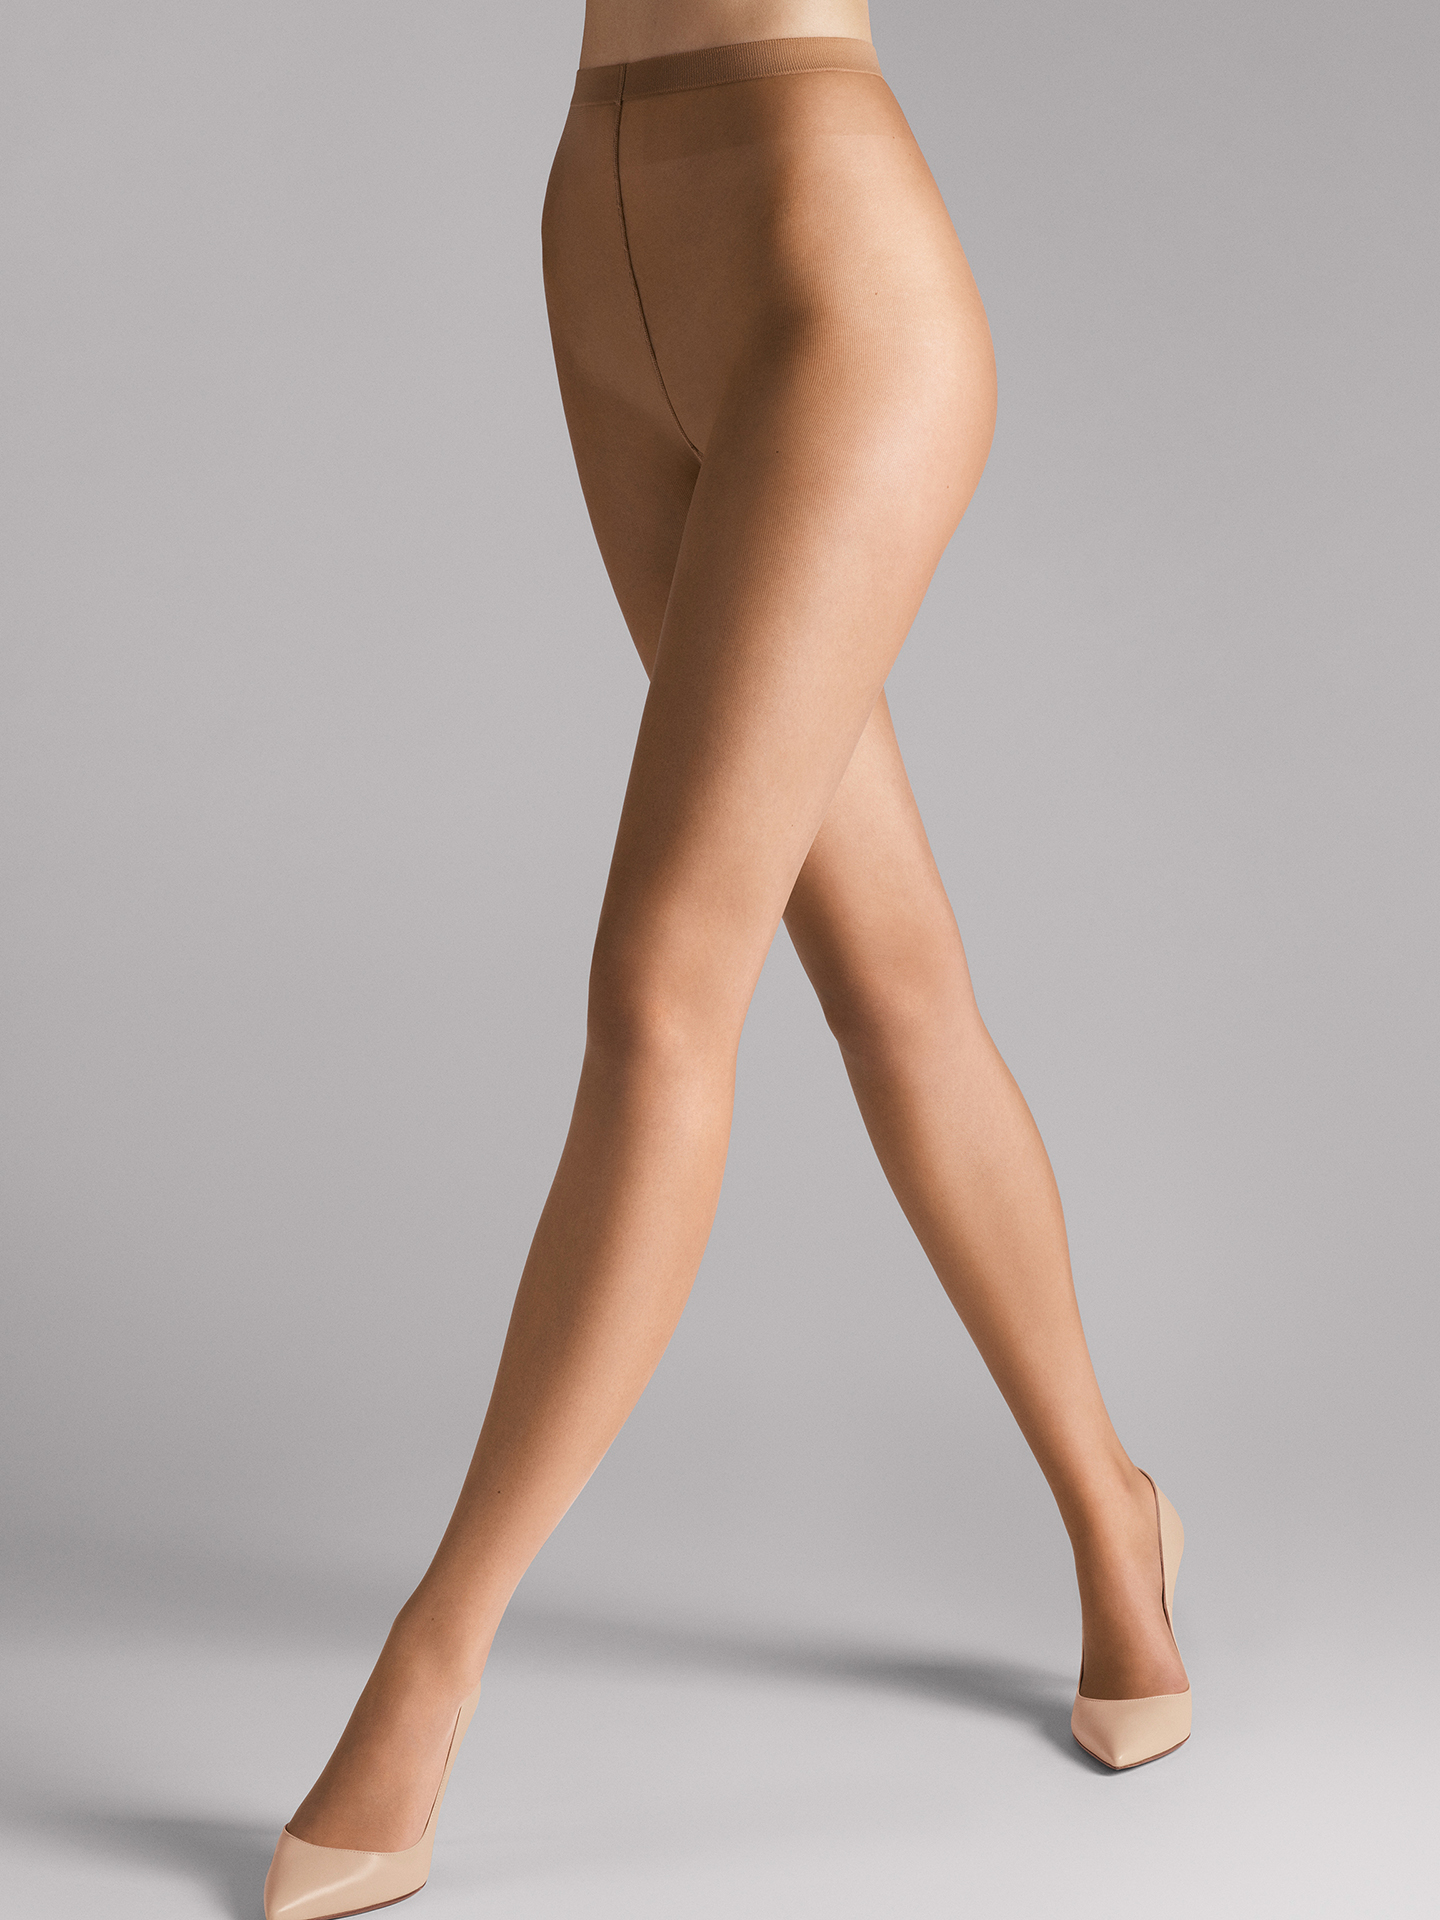 Wolford Apparel & Accessories > Clothing > Collant Naked 8 - 4060 - M